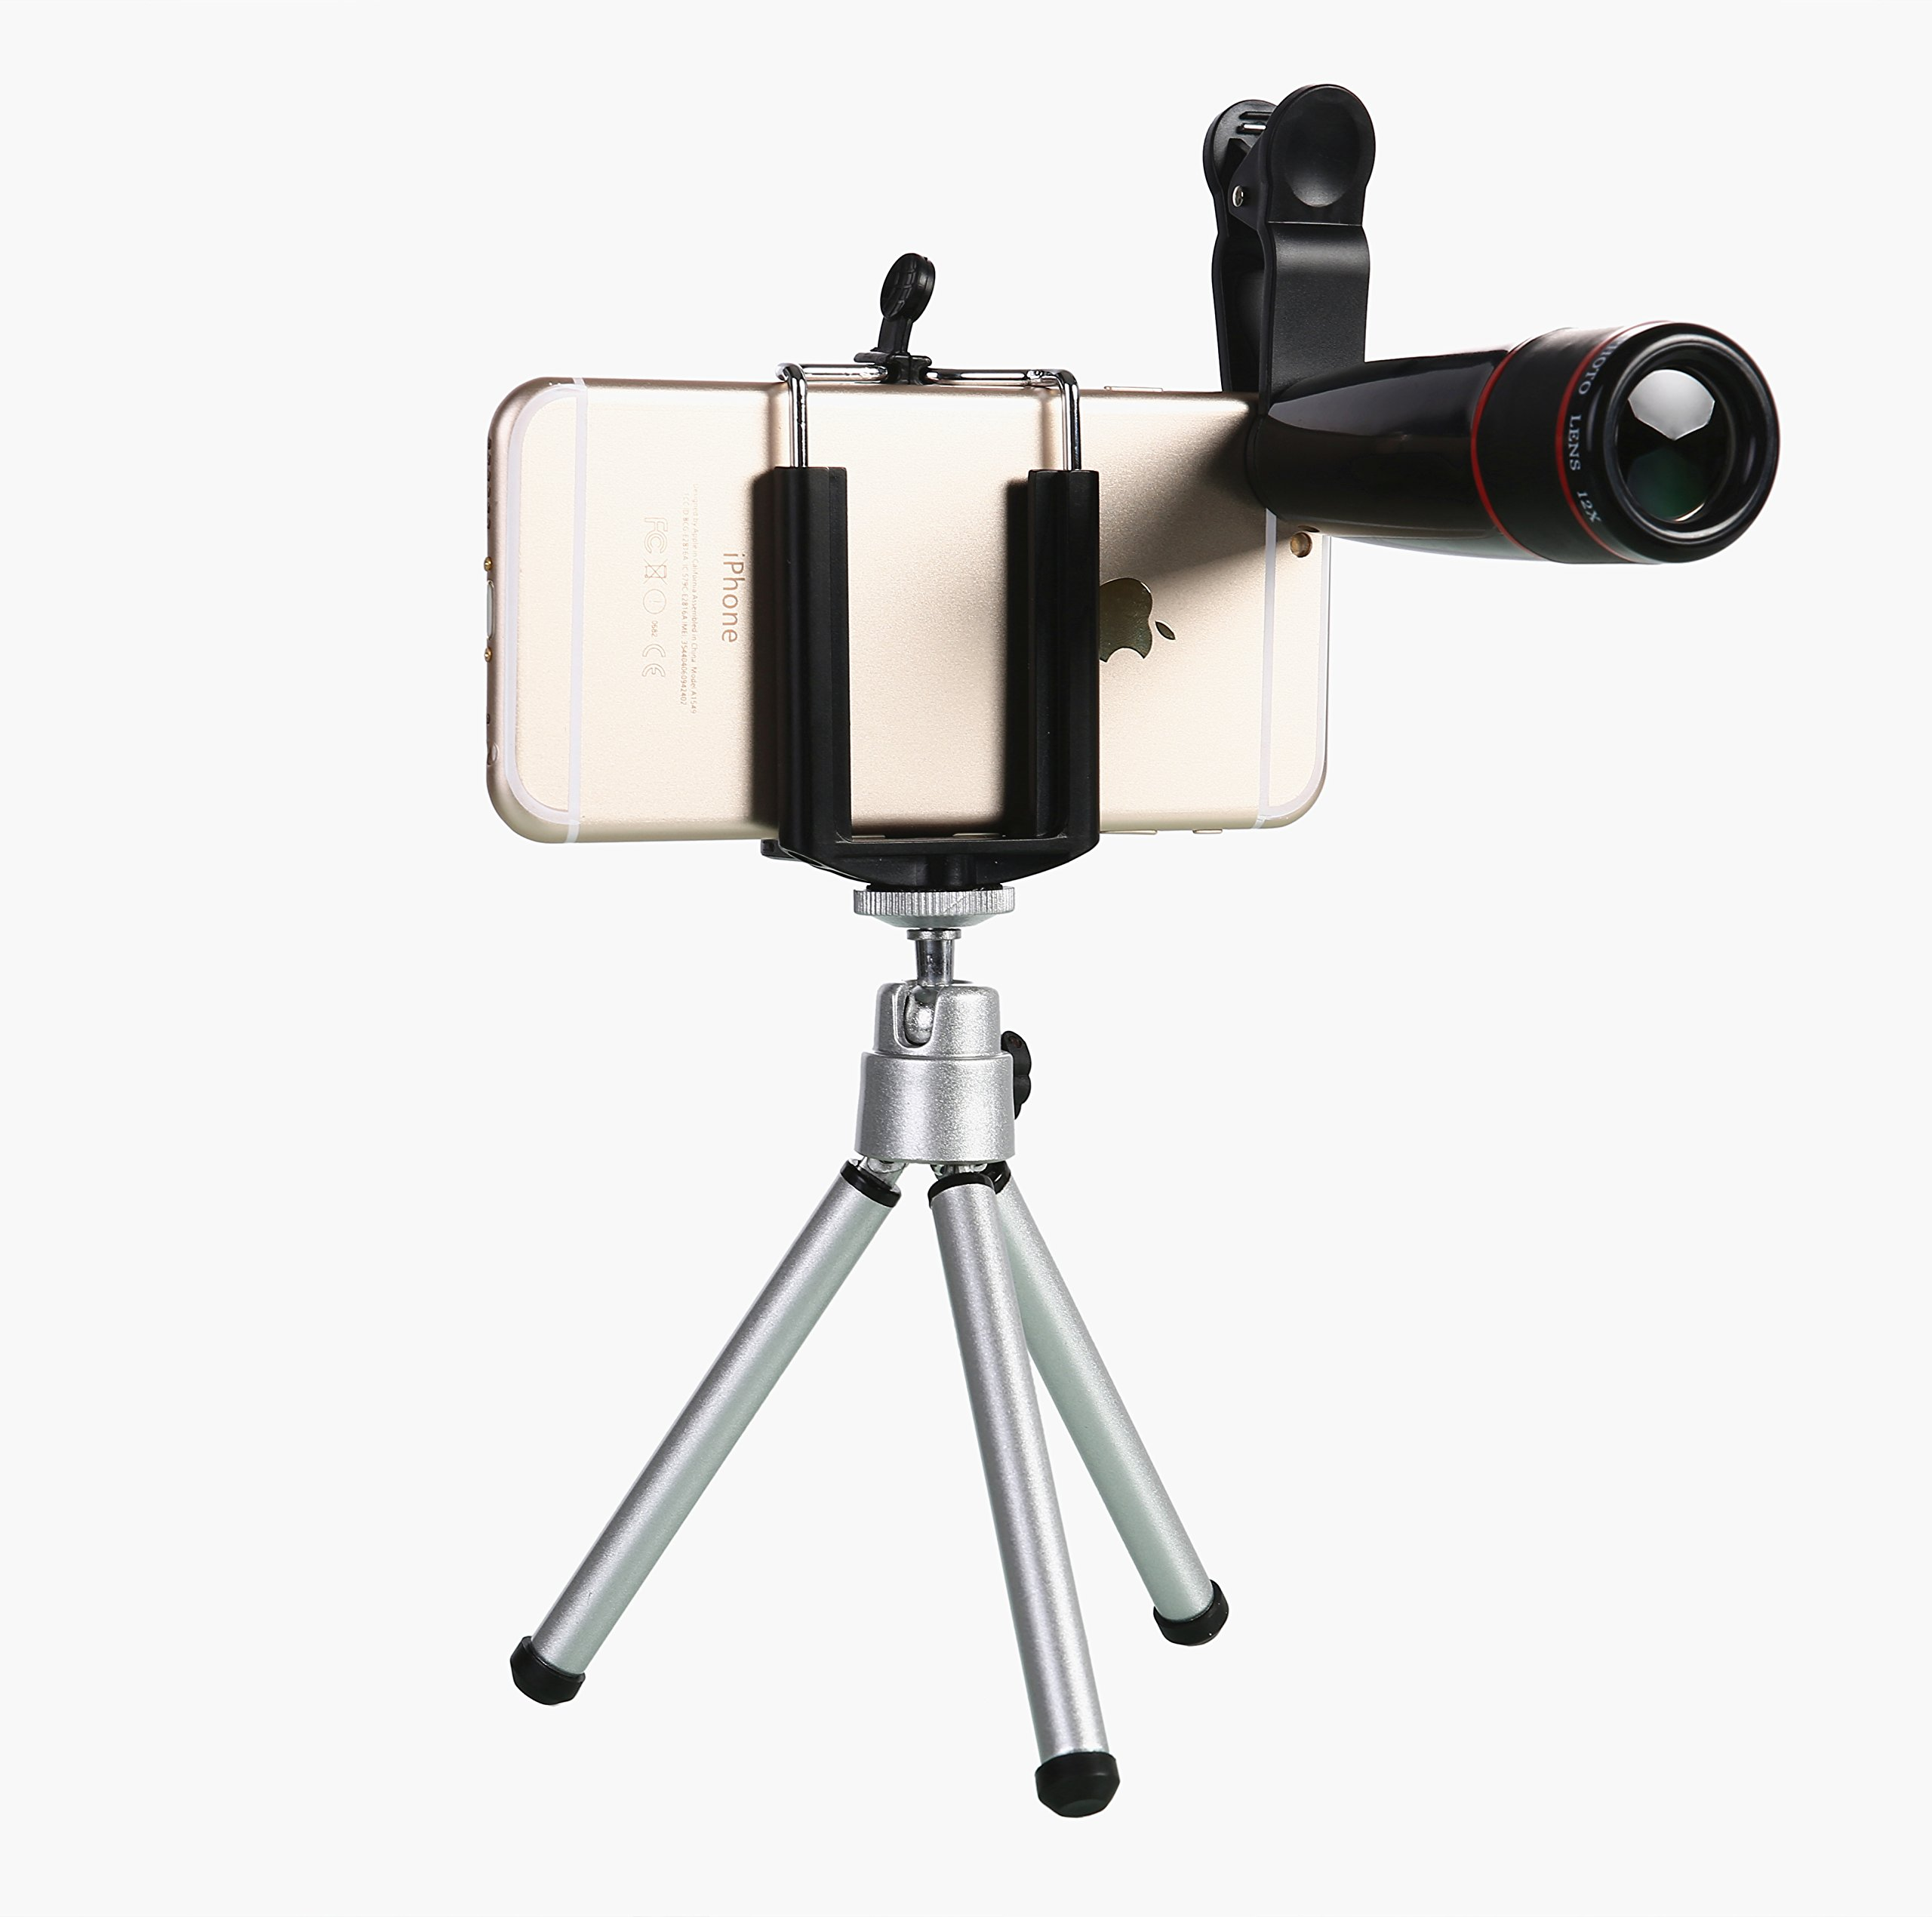 WONBSDOM Universal 12X Zoom Clip-On Aluminum Telephoto Manual Focus Telescope Camera Lens Phone Lens (Black) with Tripod + Retractable Phone Holder + Microfiber Cleaning Cloth for iPhone 4S 5 5S 5C 6 iTouch iPad Samsung Galaxy S3 S4 S5 S6 Note 2/3/4 HTC Nokia Sony,etc.